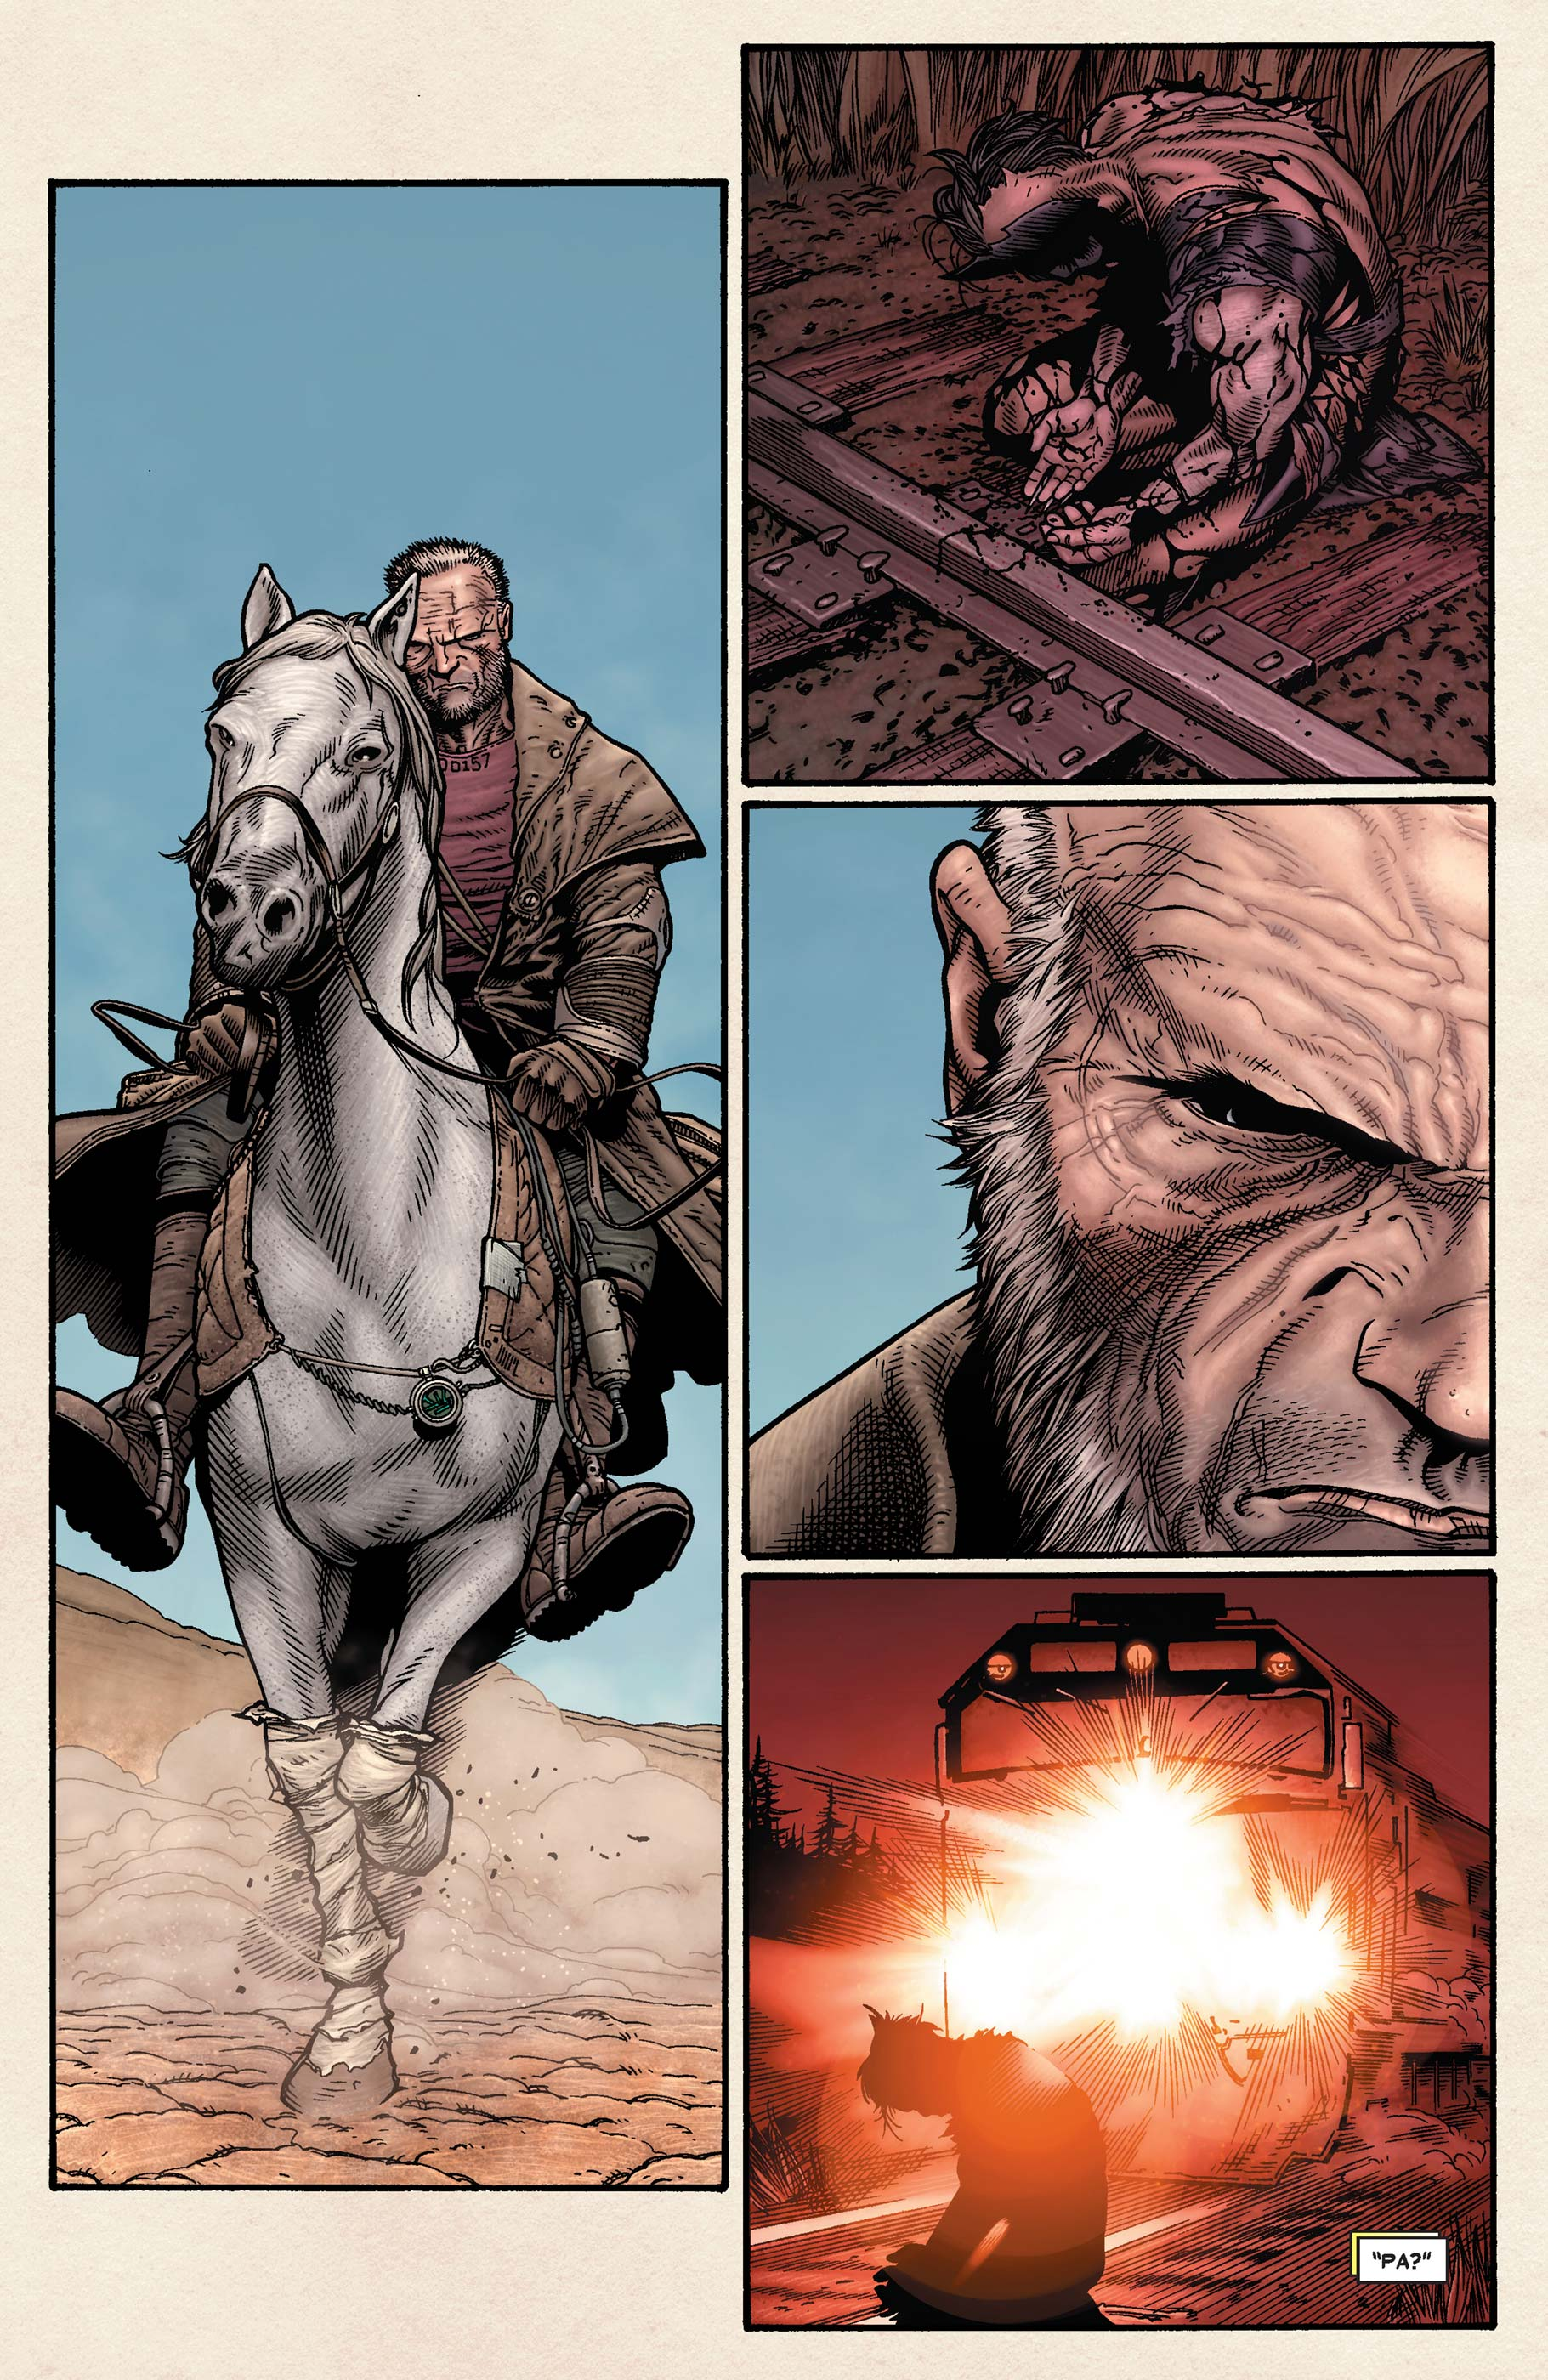 The 'Old Man Logan' comics focus heavily on Logan's shame about his past.